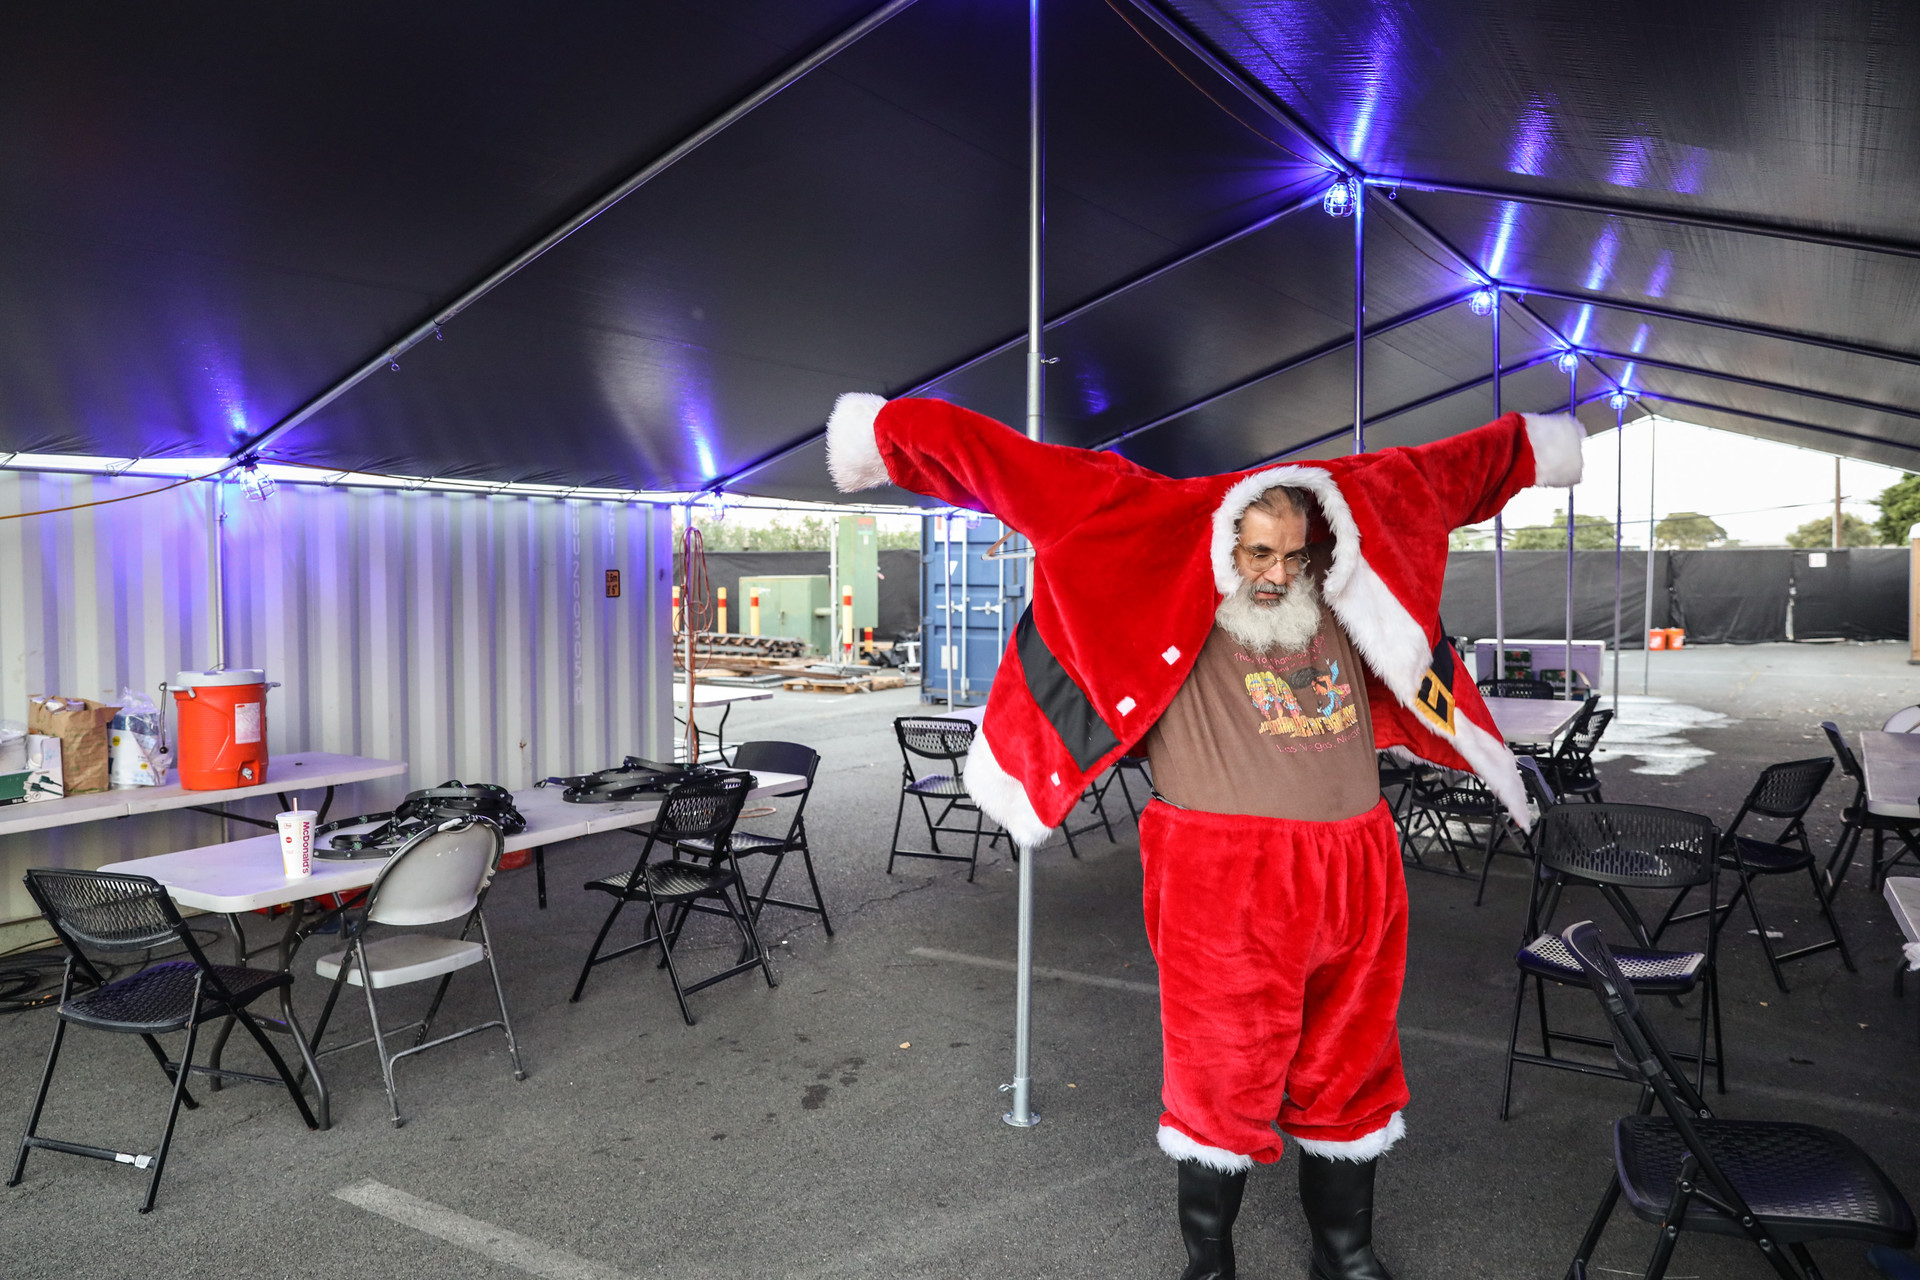 When the clock hits 5:30 in the evening, Don Gonzales starts putting on his Santa outfit backstage of the Christmas light show.